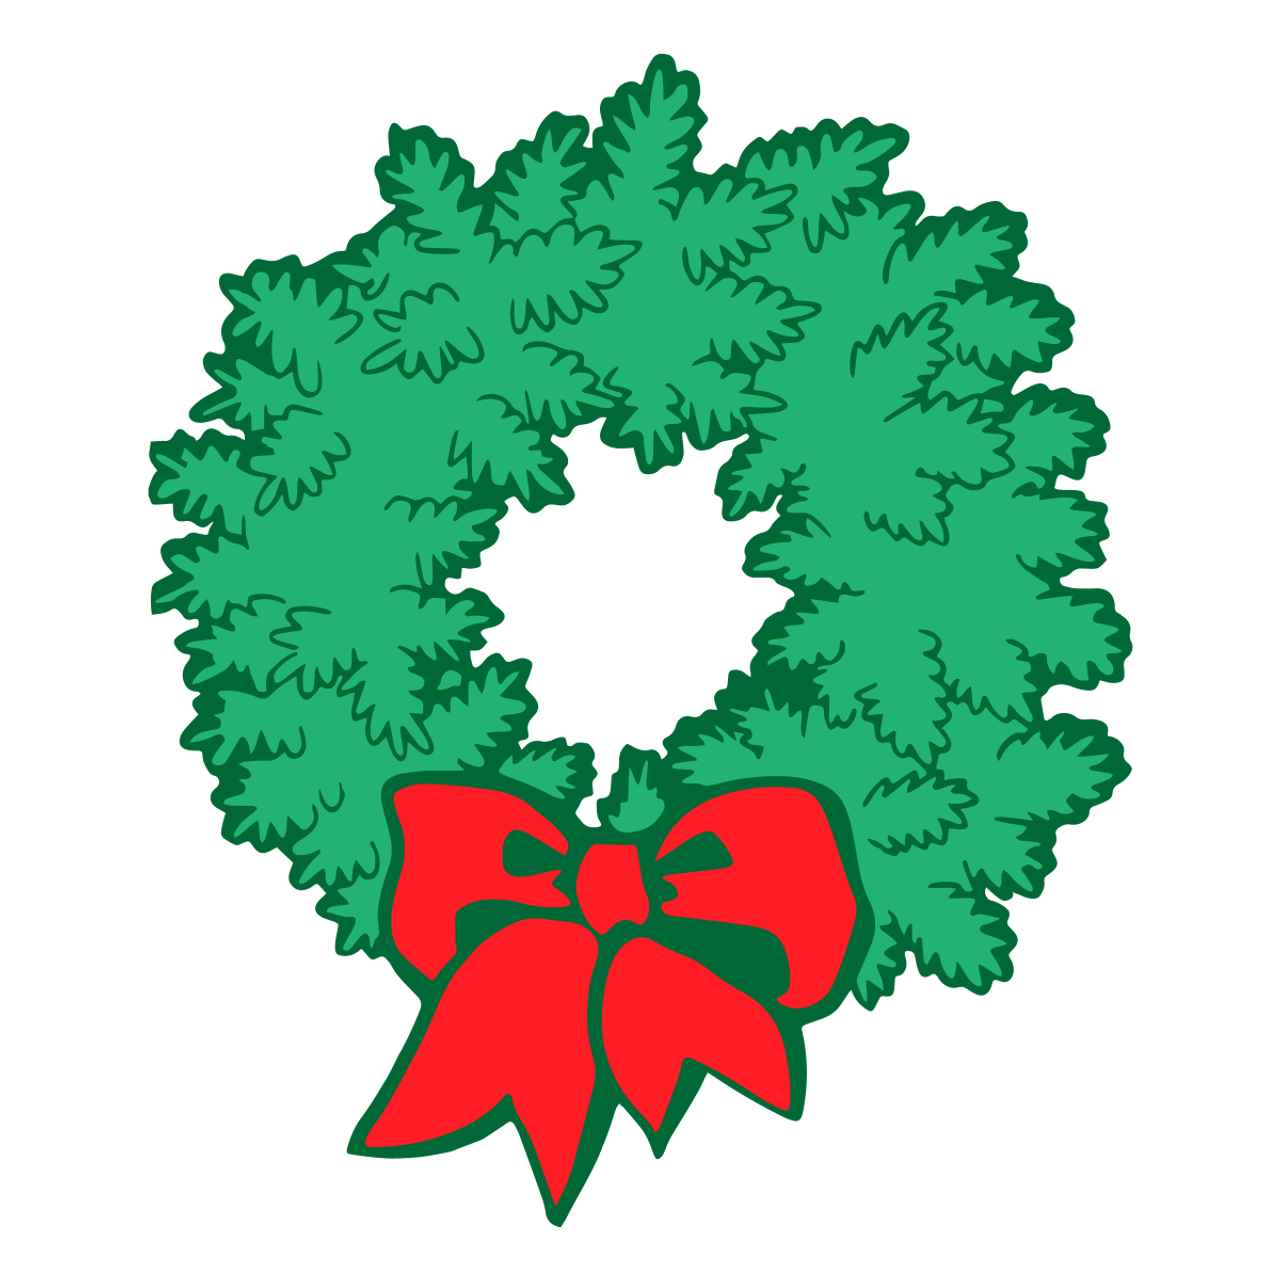 Christmas Wreath Silhouette.Christmas Wreath Svg Svg Eps Png Dxf Cut Files For Cricut